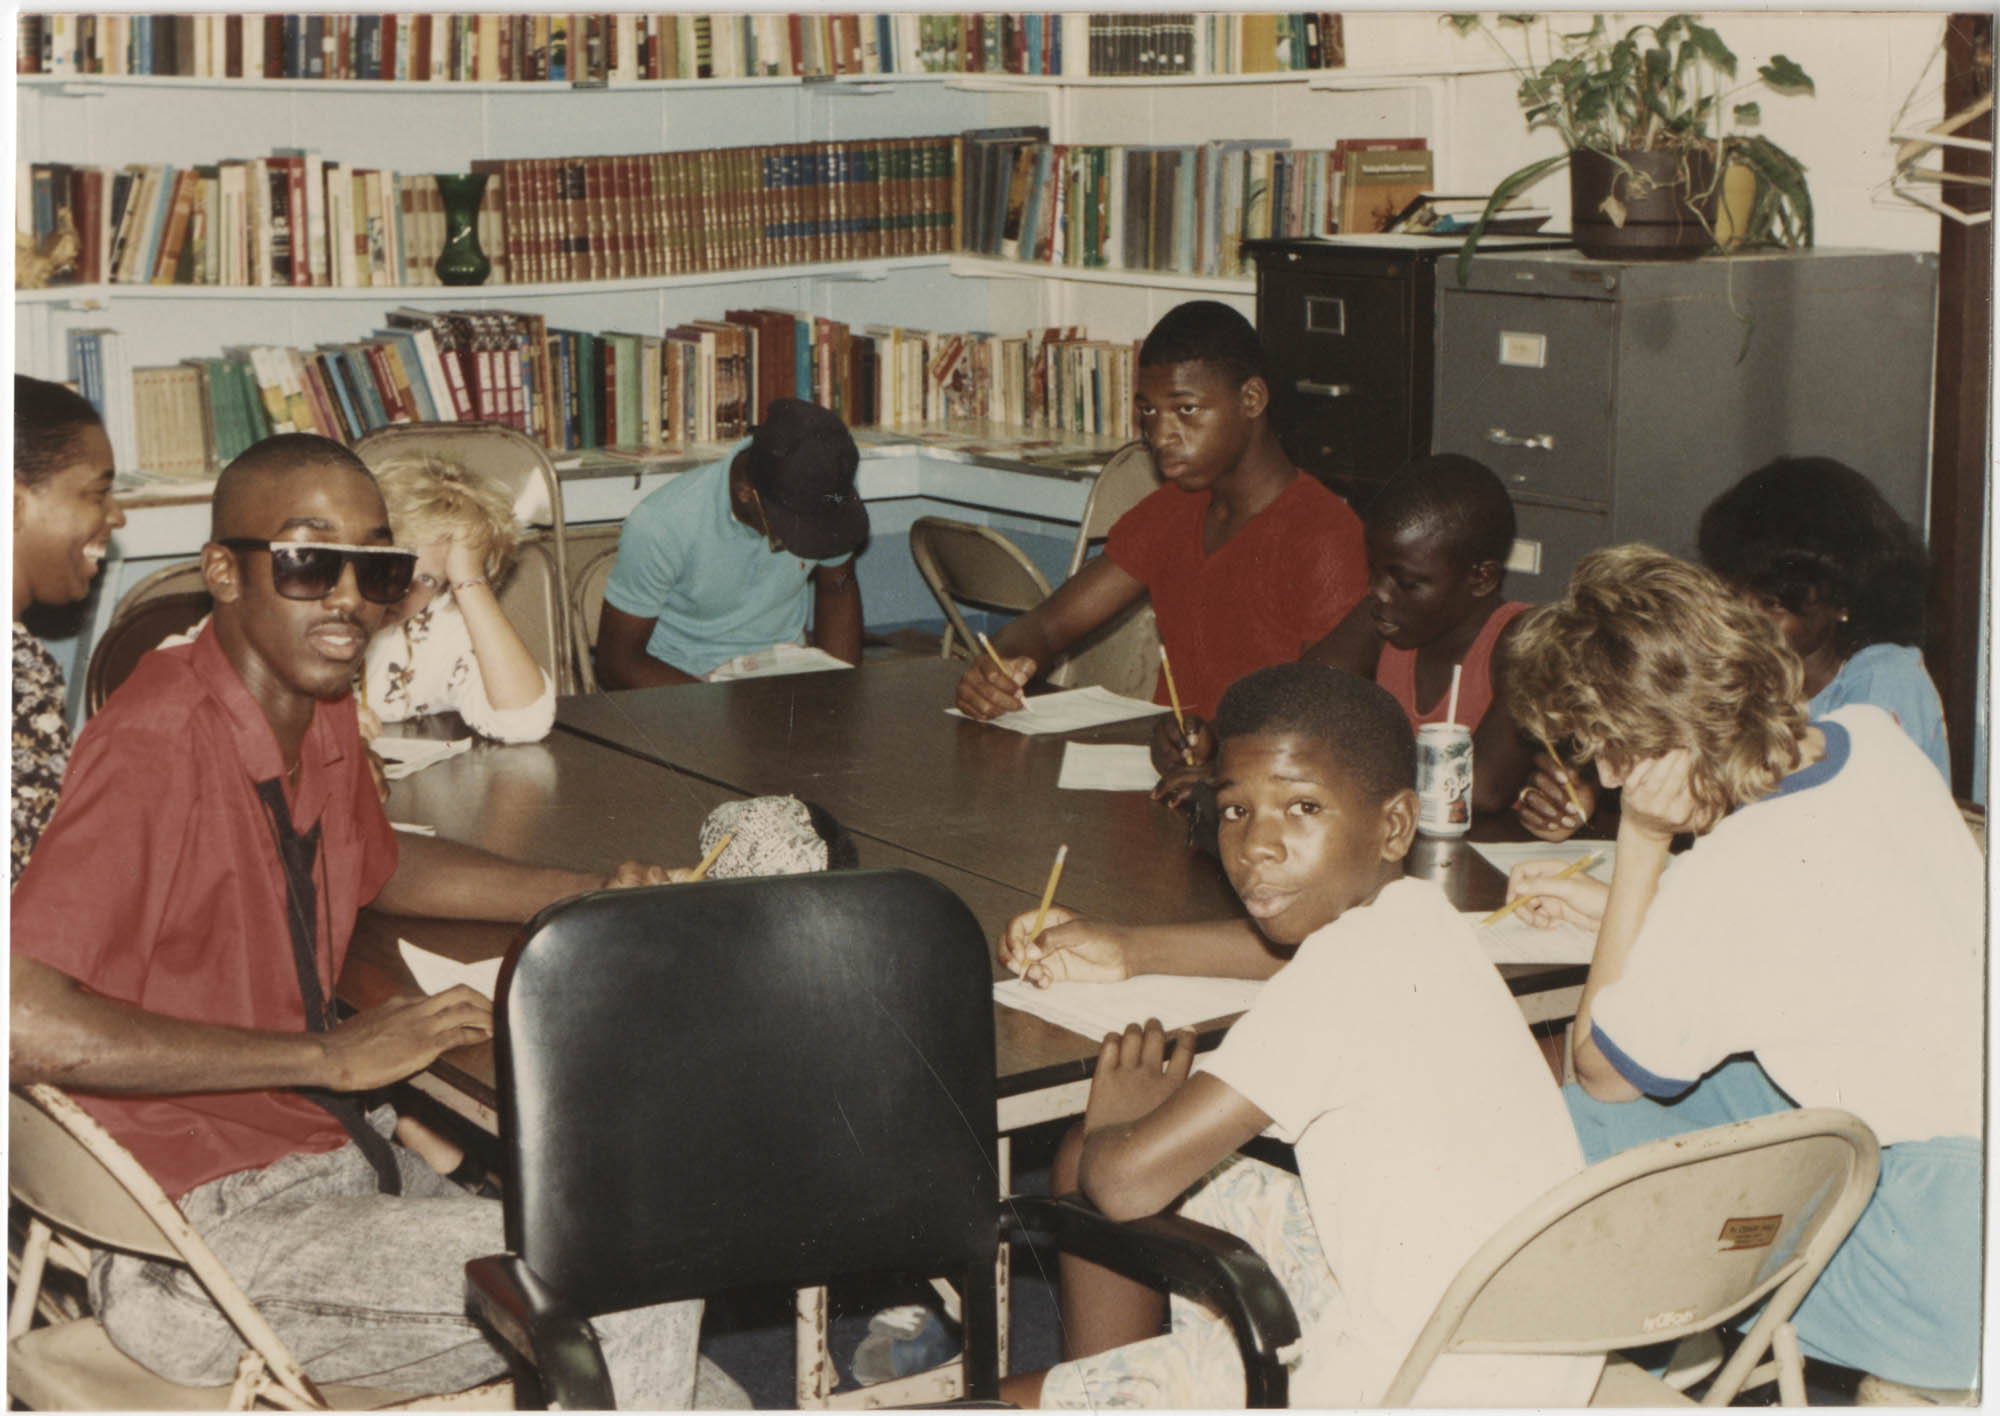 Photograph of Adolescents Writing